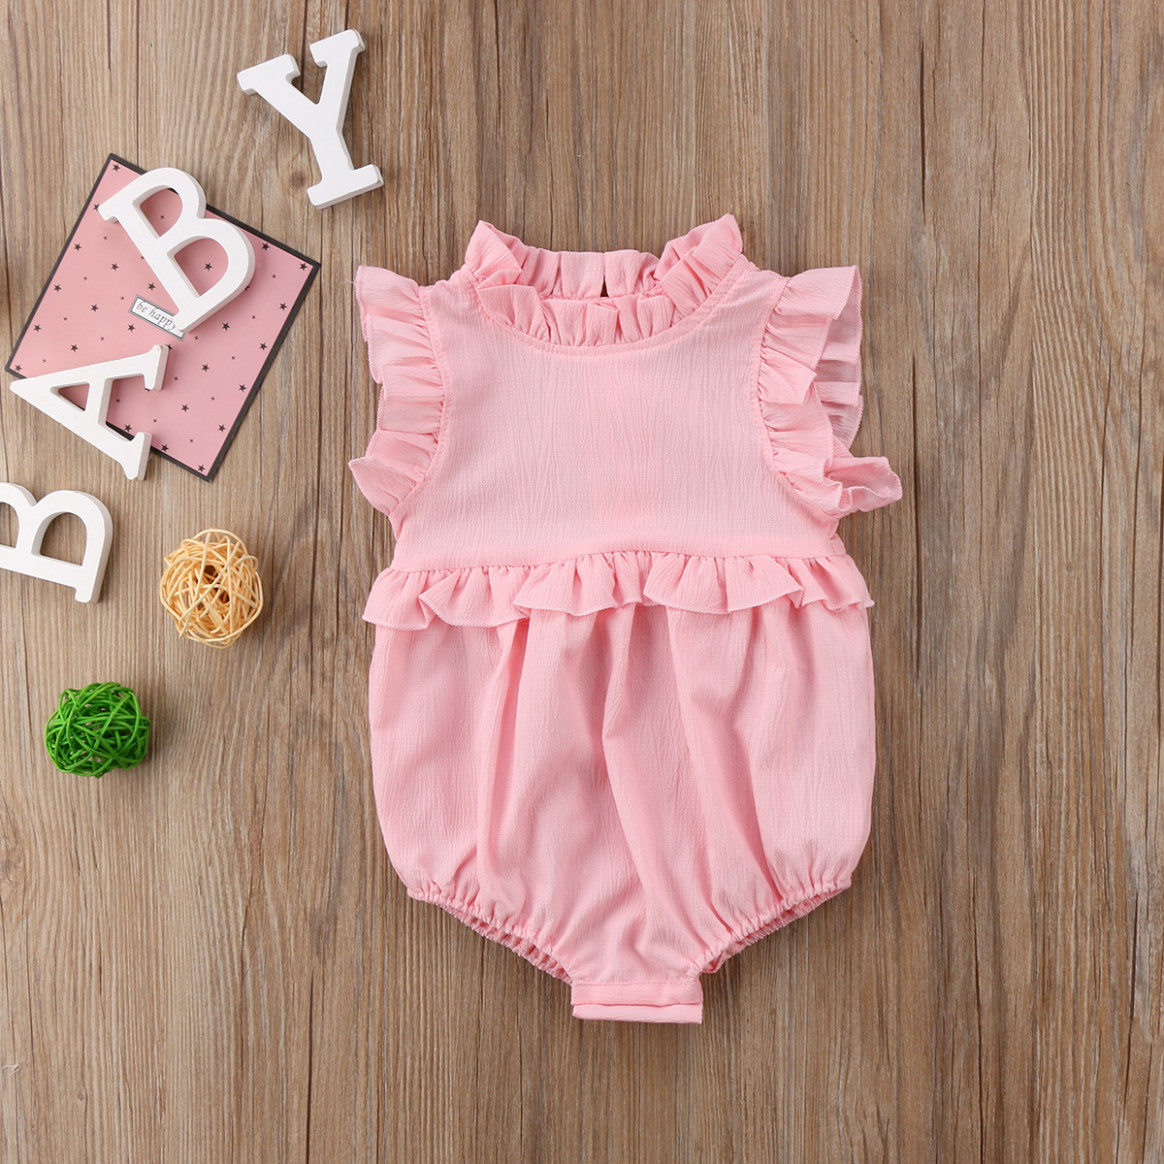 summer newborn infant baby girl ruffle solid romper bodysuit jumpsuit outfit clothes baby sommerkleidung